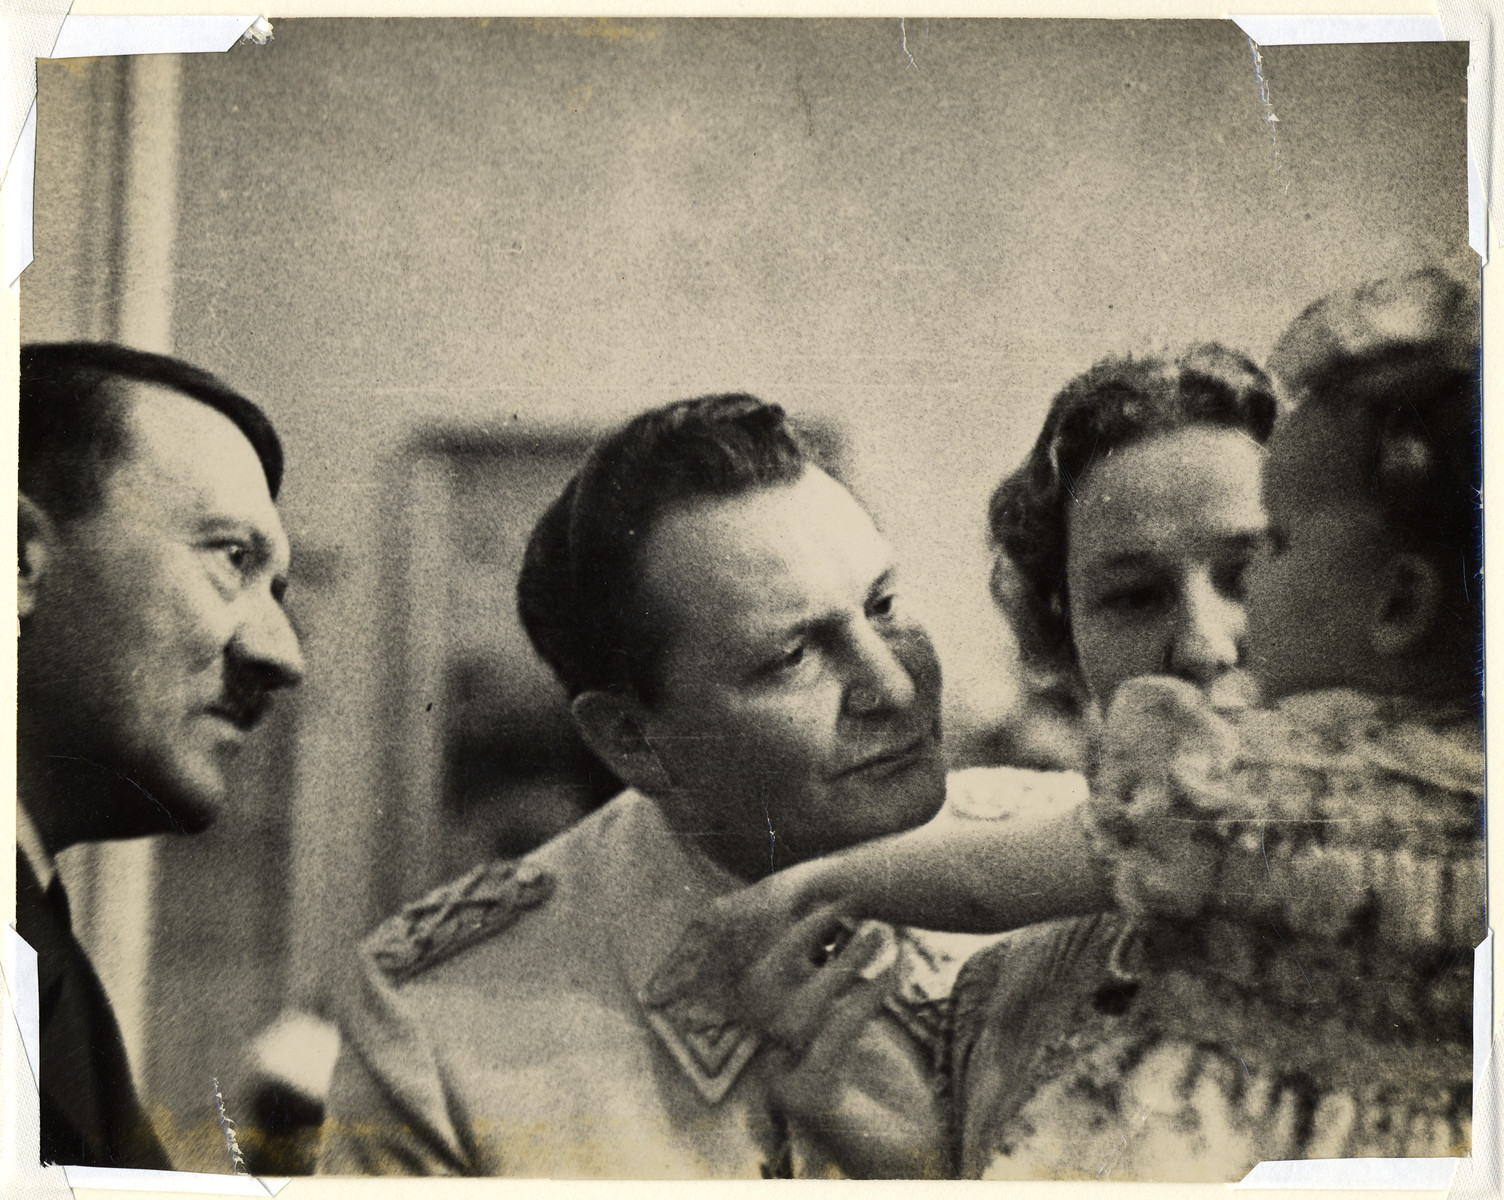 Hermann Goering, his wife, Emmy and child, Edda meet with Adolf Hitler.